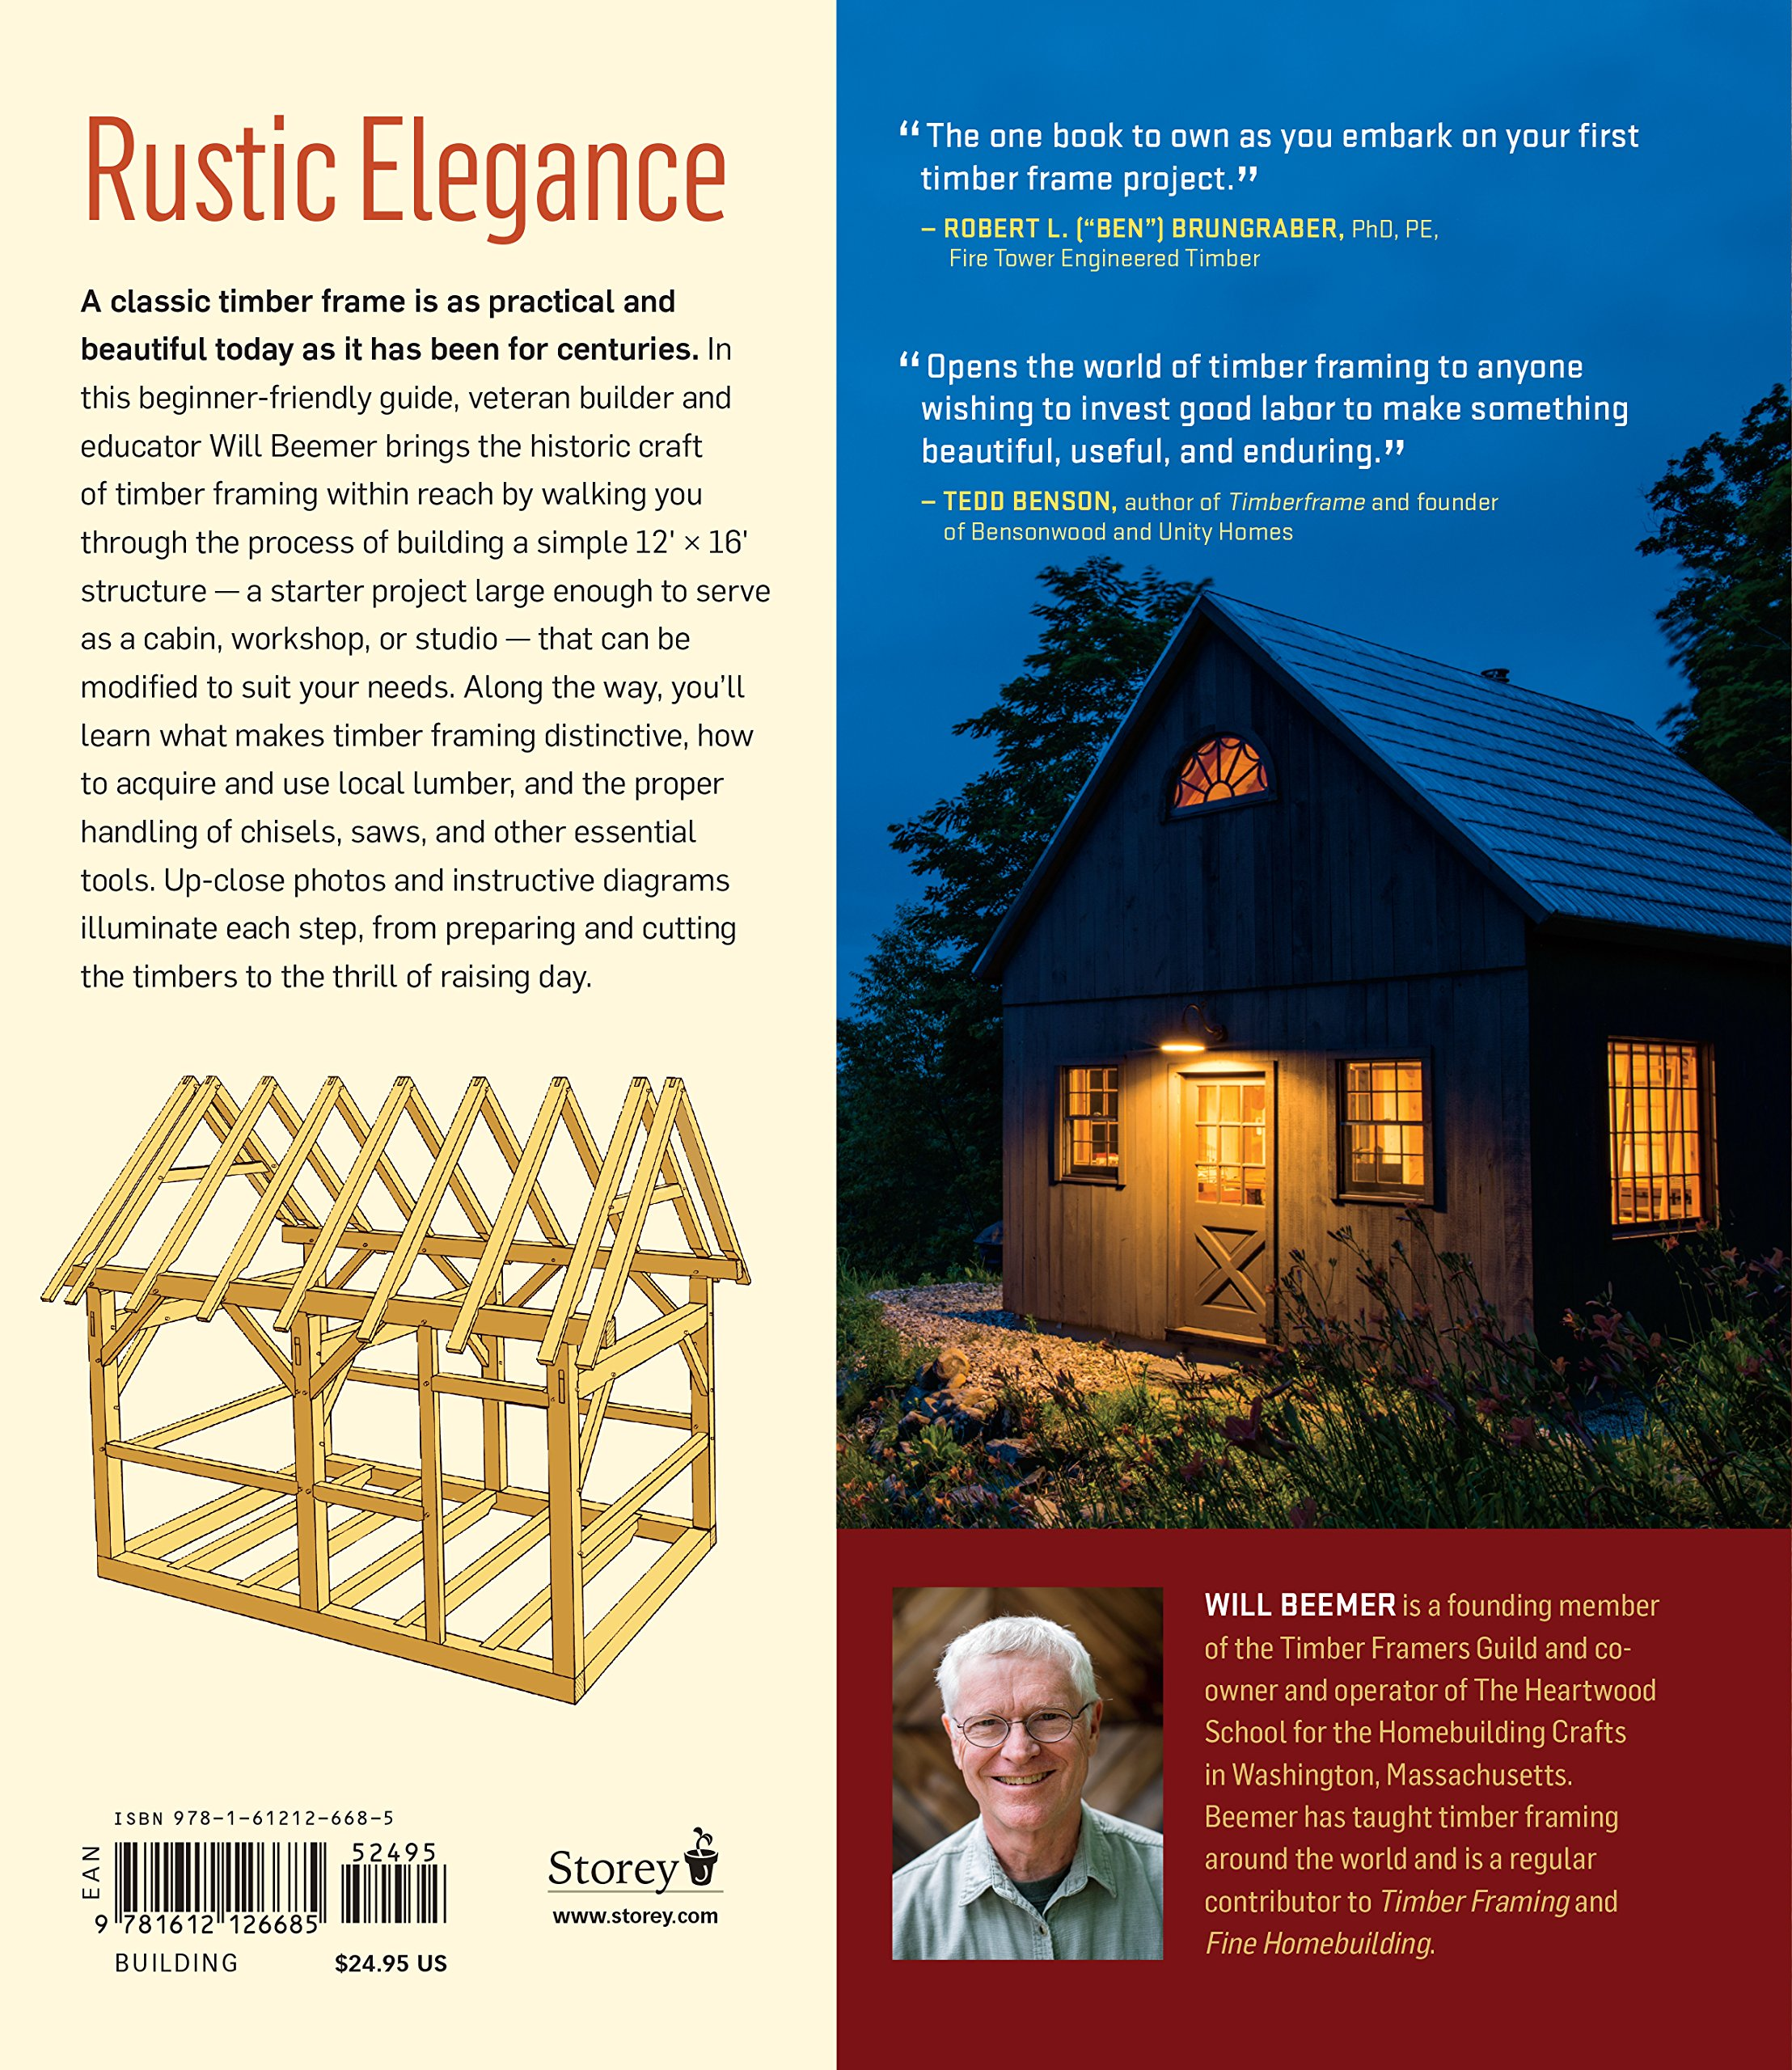 Learn to Timber Frame: Craftsmanship, Simplicity, Timeless Beauty ...